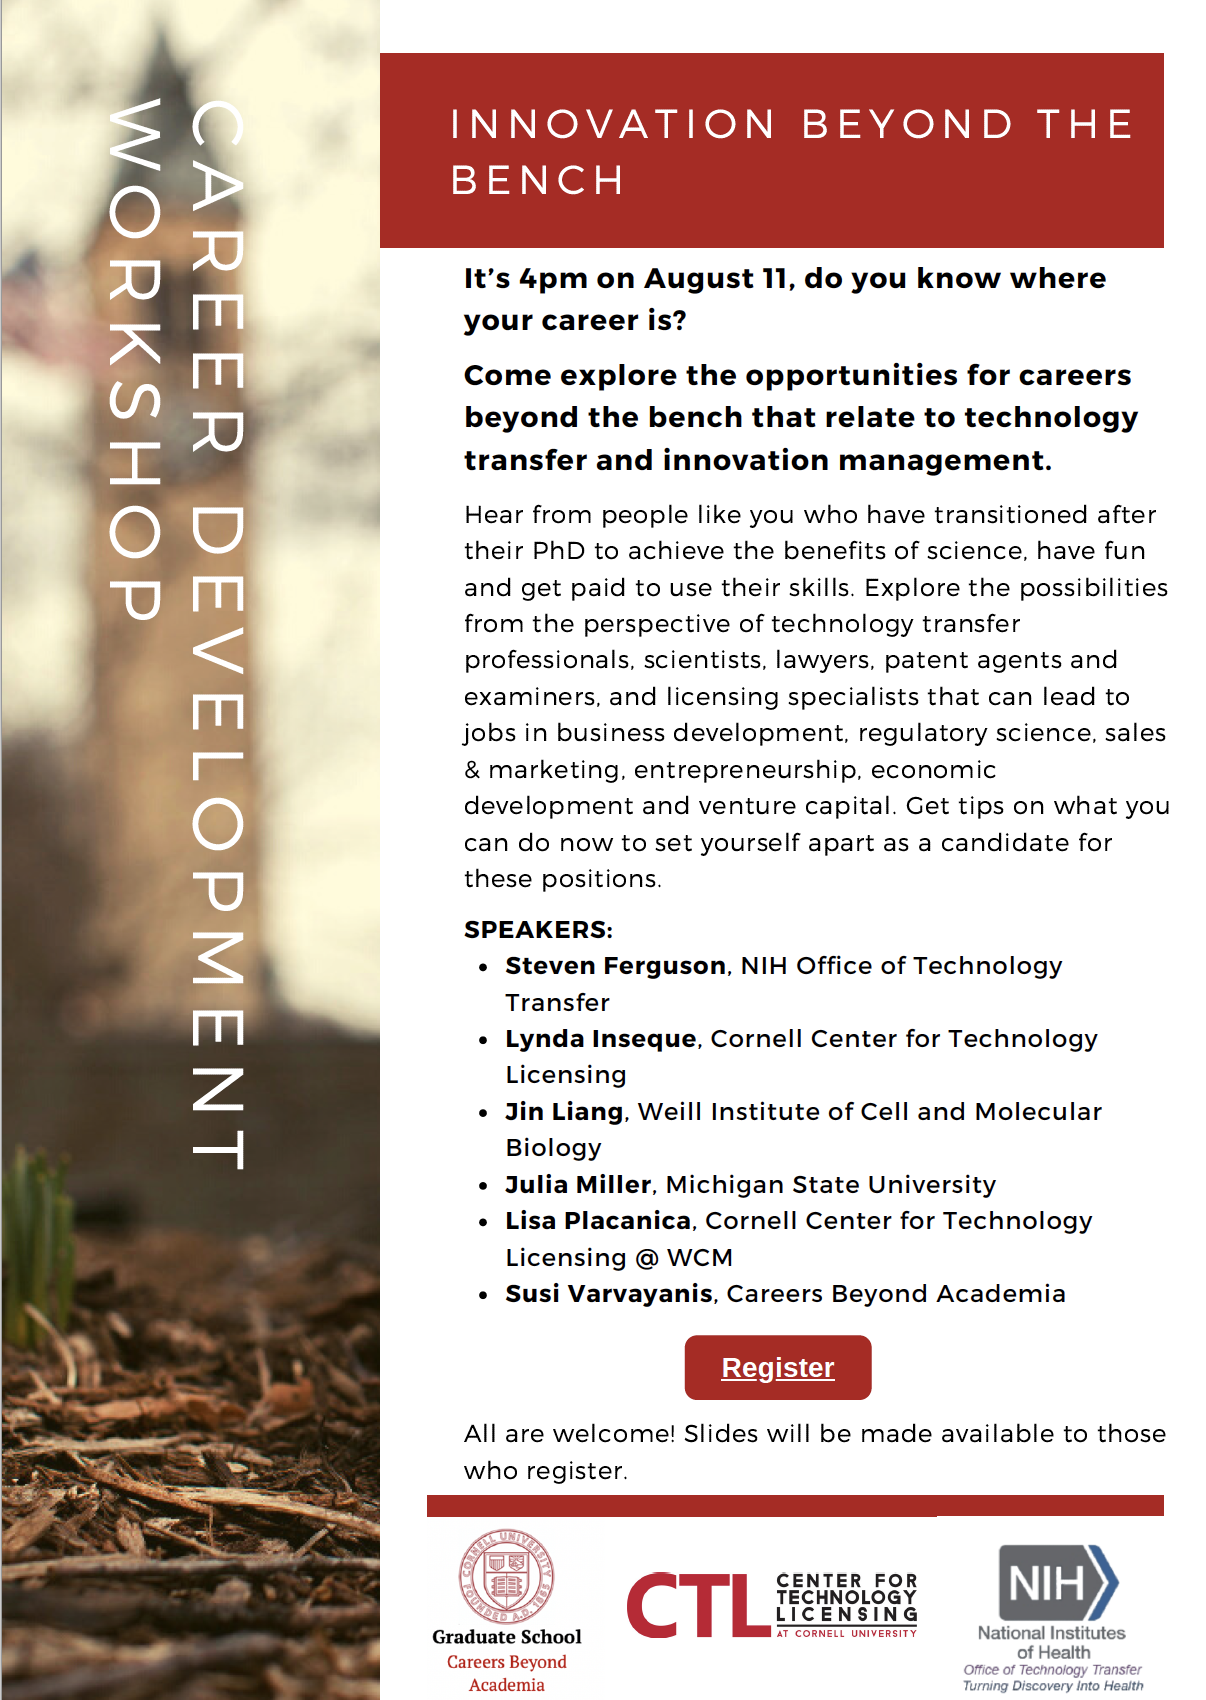 flyer for innovation beyond the bench: SPEAKERS: Steven Ferguson, NIH Office of Technology Transfer Meera Govindaraghavan, Cornell postdoc alumna '14-1'5, patent agent at Cooley Lynda Inseque, Cornell Center for Technology Licensing Jin Liang, Weill Institute of Cell and Molecular Biology Julia Miller PhD'20, AgBio Technology Transfer Fellow, Michigan State University Lisa Placanica '00 PhD'09, Cornell Center for Technology Licensing @Weill Cornell Medicine Sabrina Solouki, PhD'20, Medical Science Liaison, Sanofi Susi Varvayanis, Careers Beyond Academia